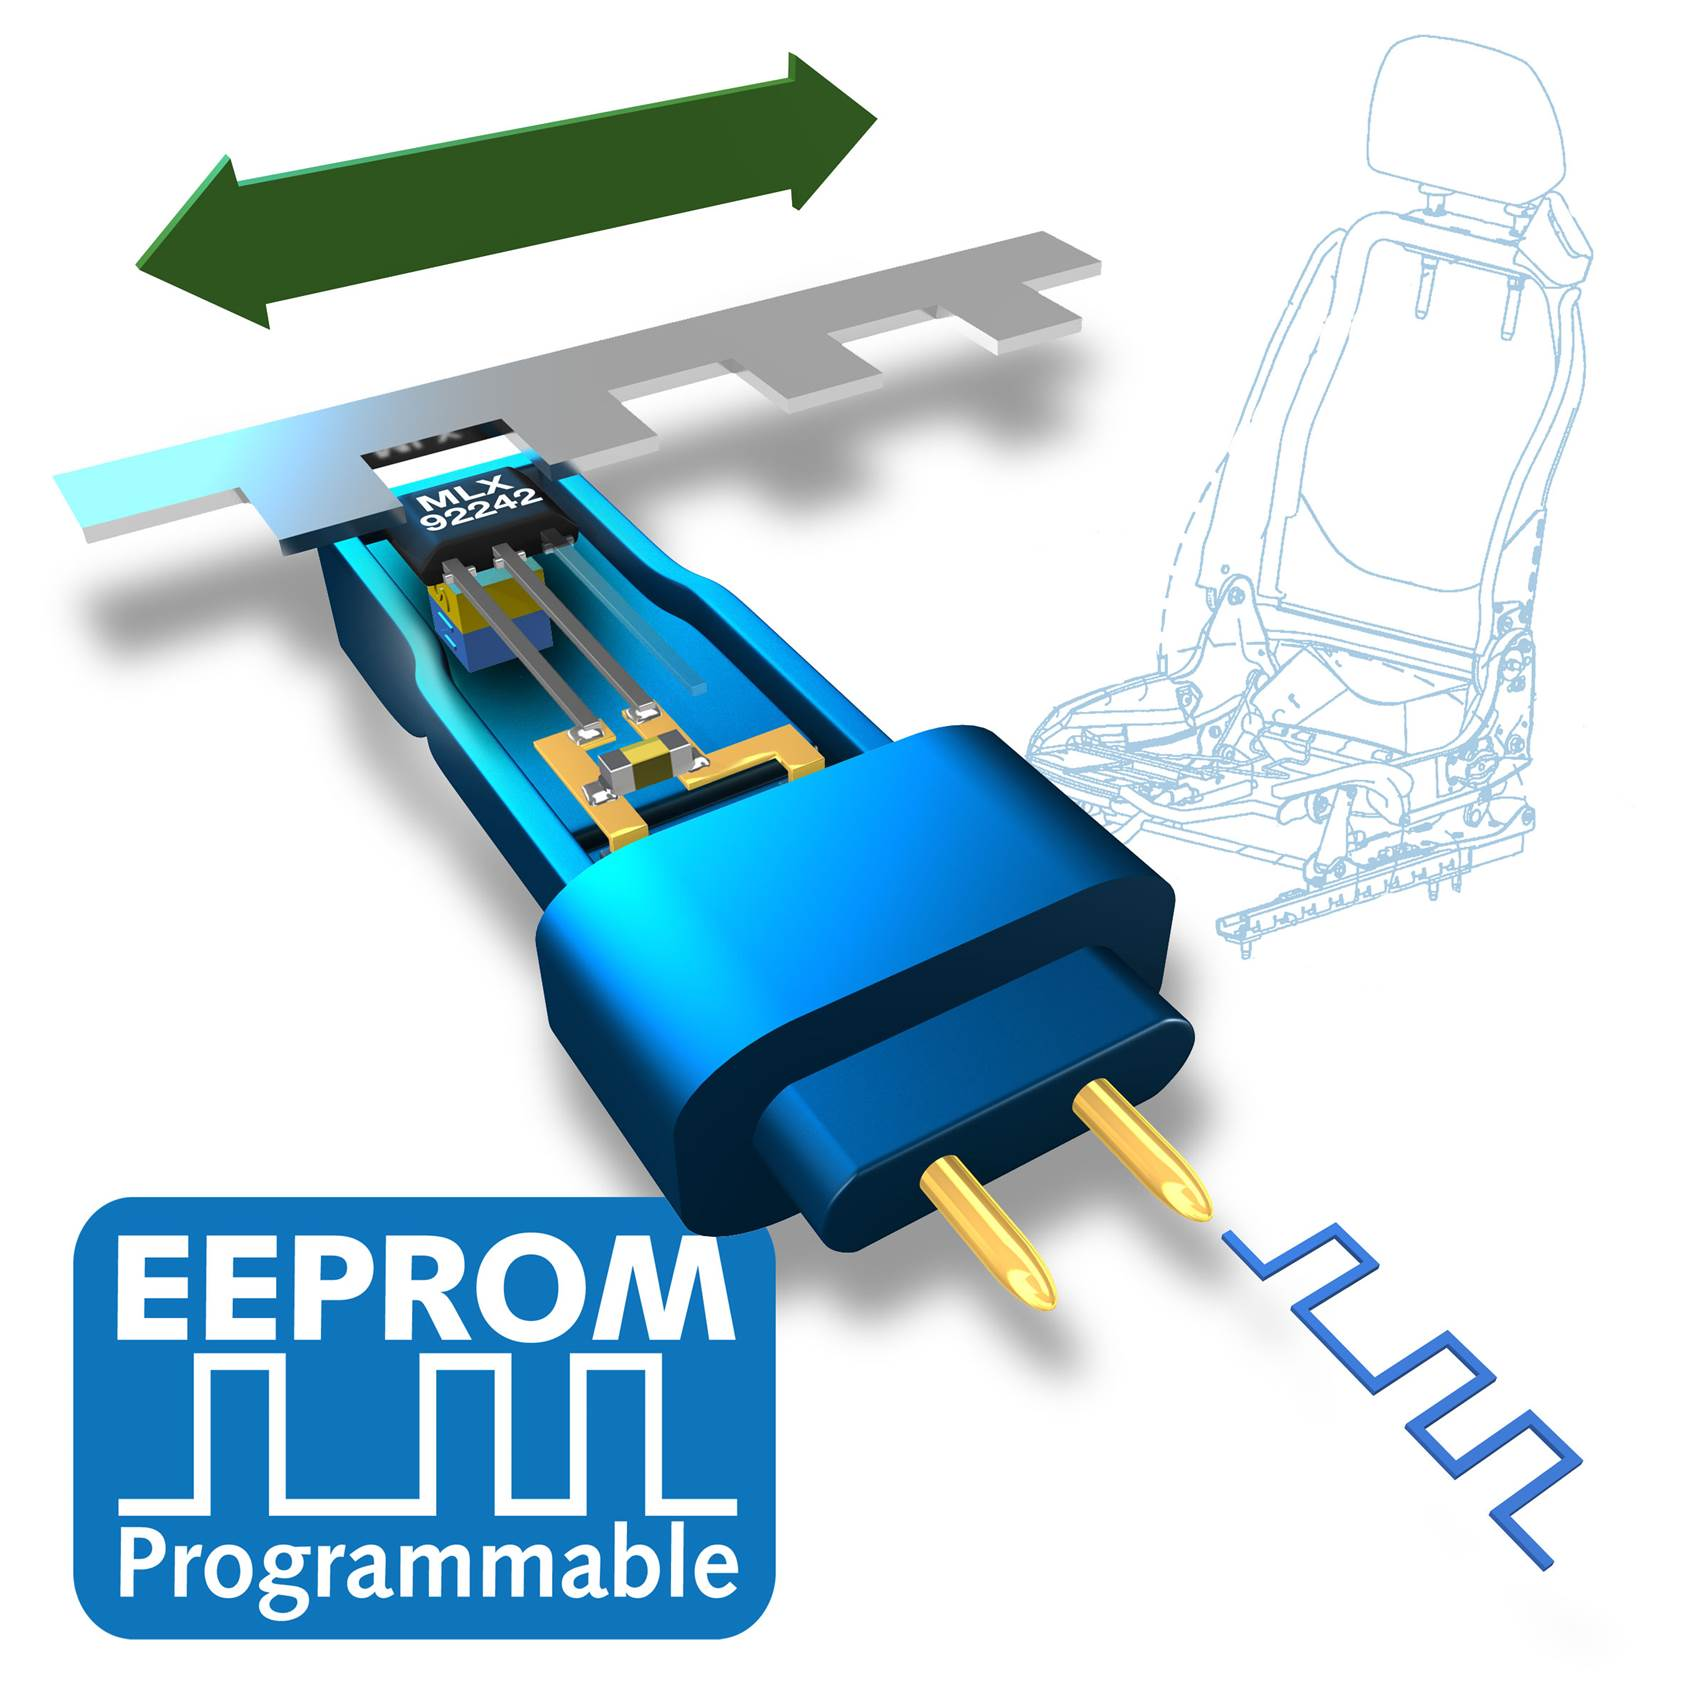 eeprom Related Stories   Electronics Weekly